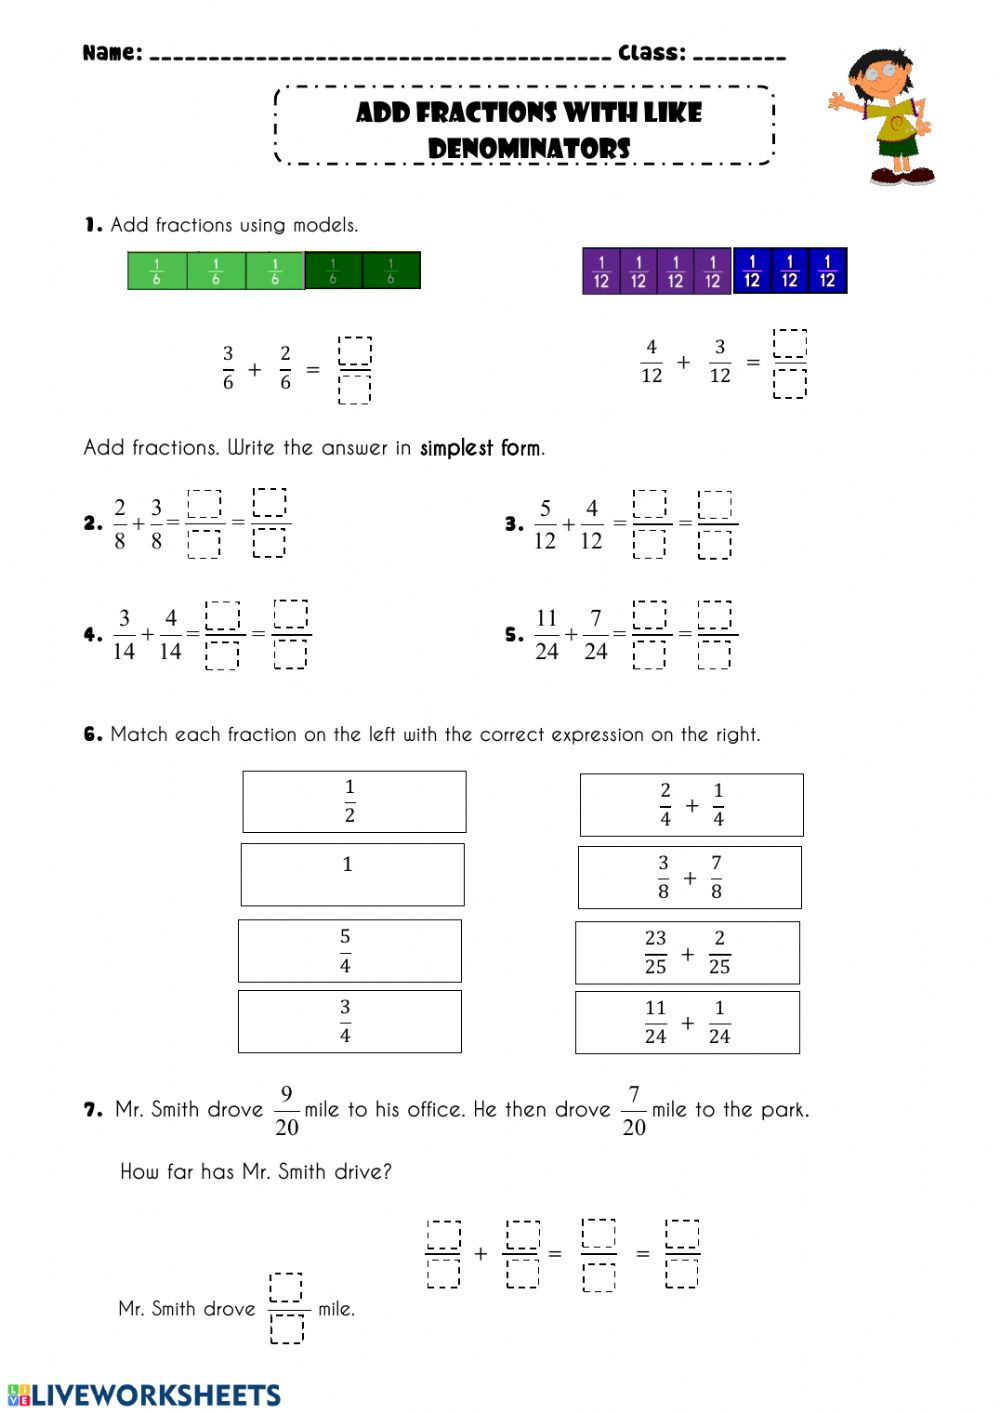 Add Fractions With Like Deominators Worksheet Adding fractions using models worksheets